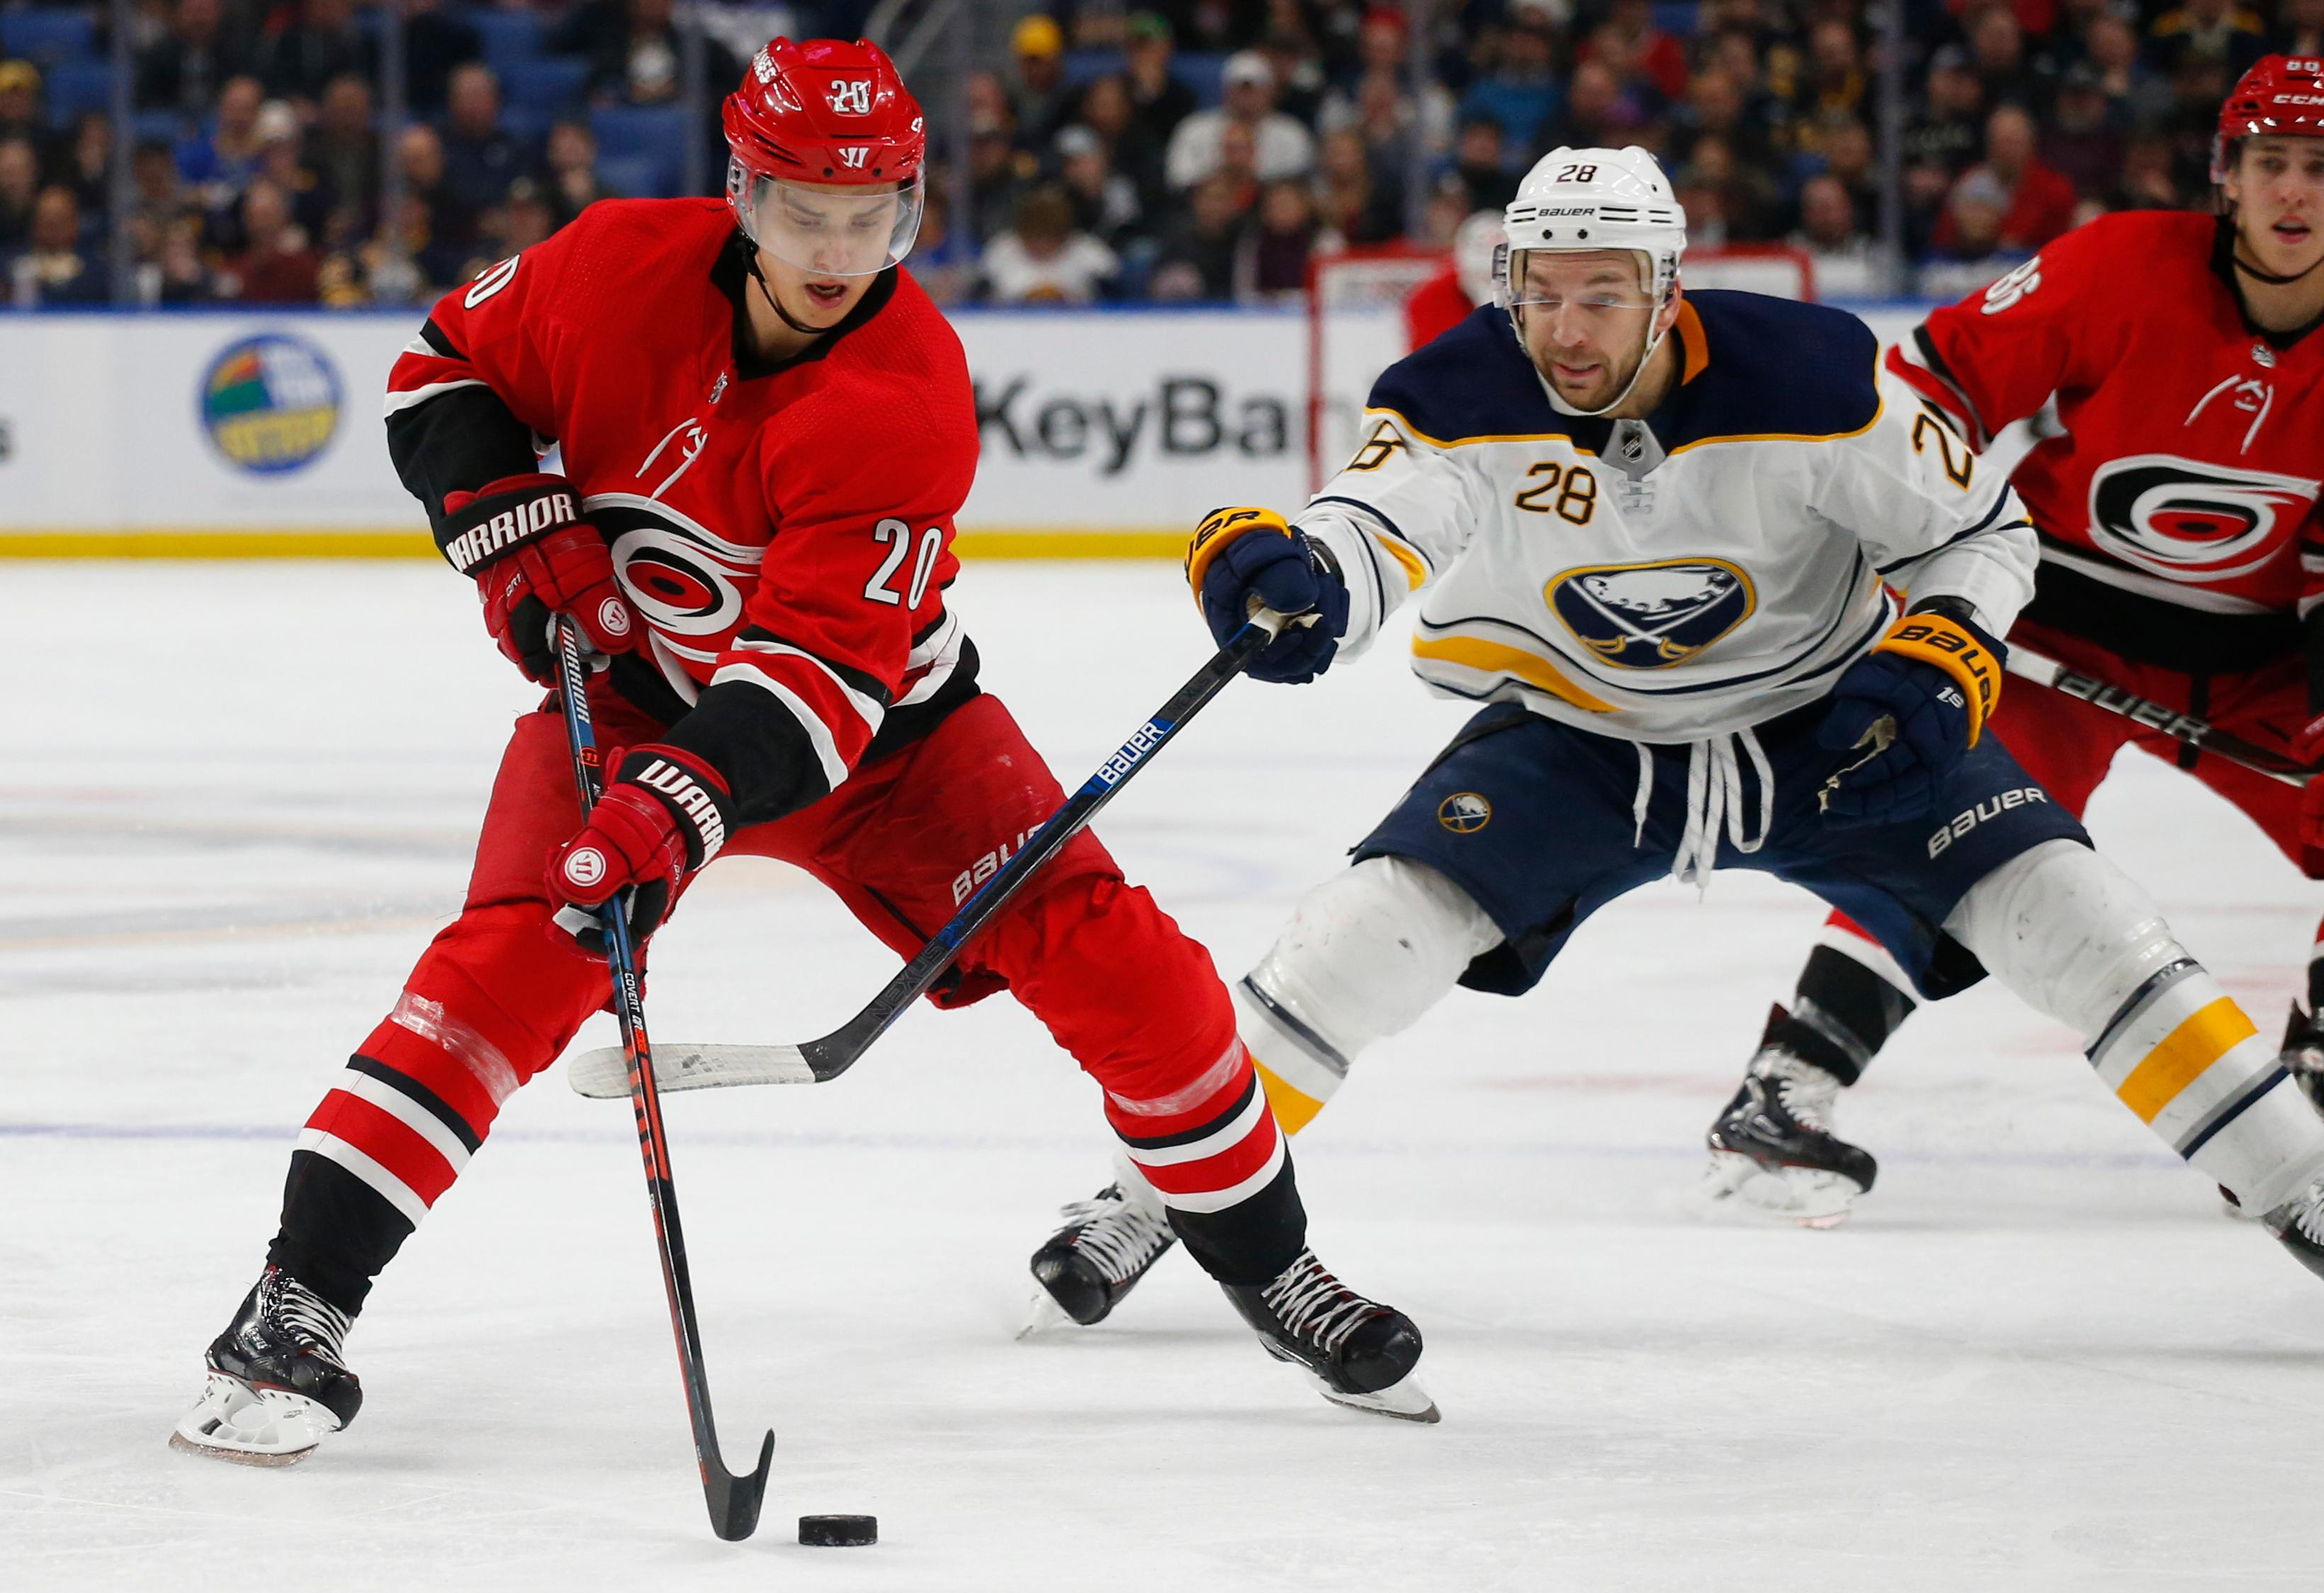 Buffalo Sabres forward Zemgus Girgensons (28) stick checks Carolina Hurricanes forward Sebastian Aho (20) during the second period of an NHL hockey game Thursday, Feb. 7, 2019, in Buffalo N.Y. (AP Photo/Jeffrey T. Barnes)